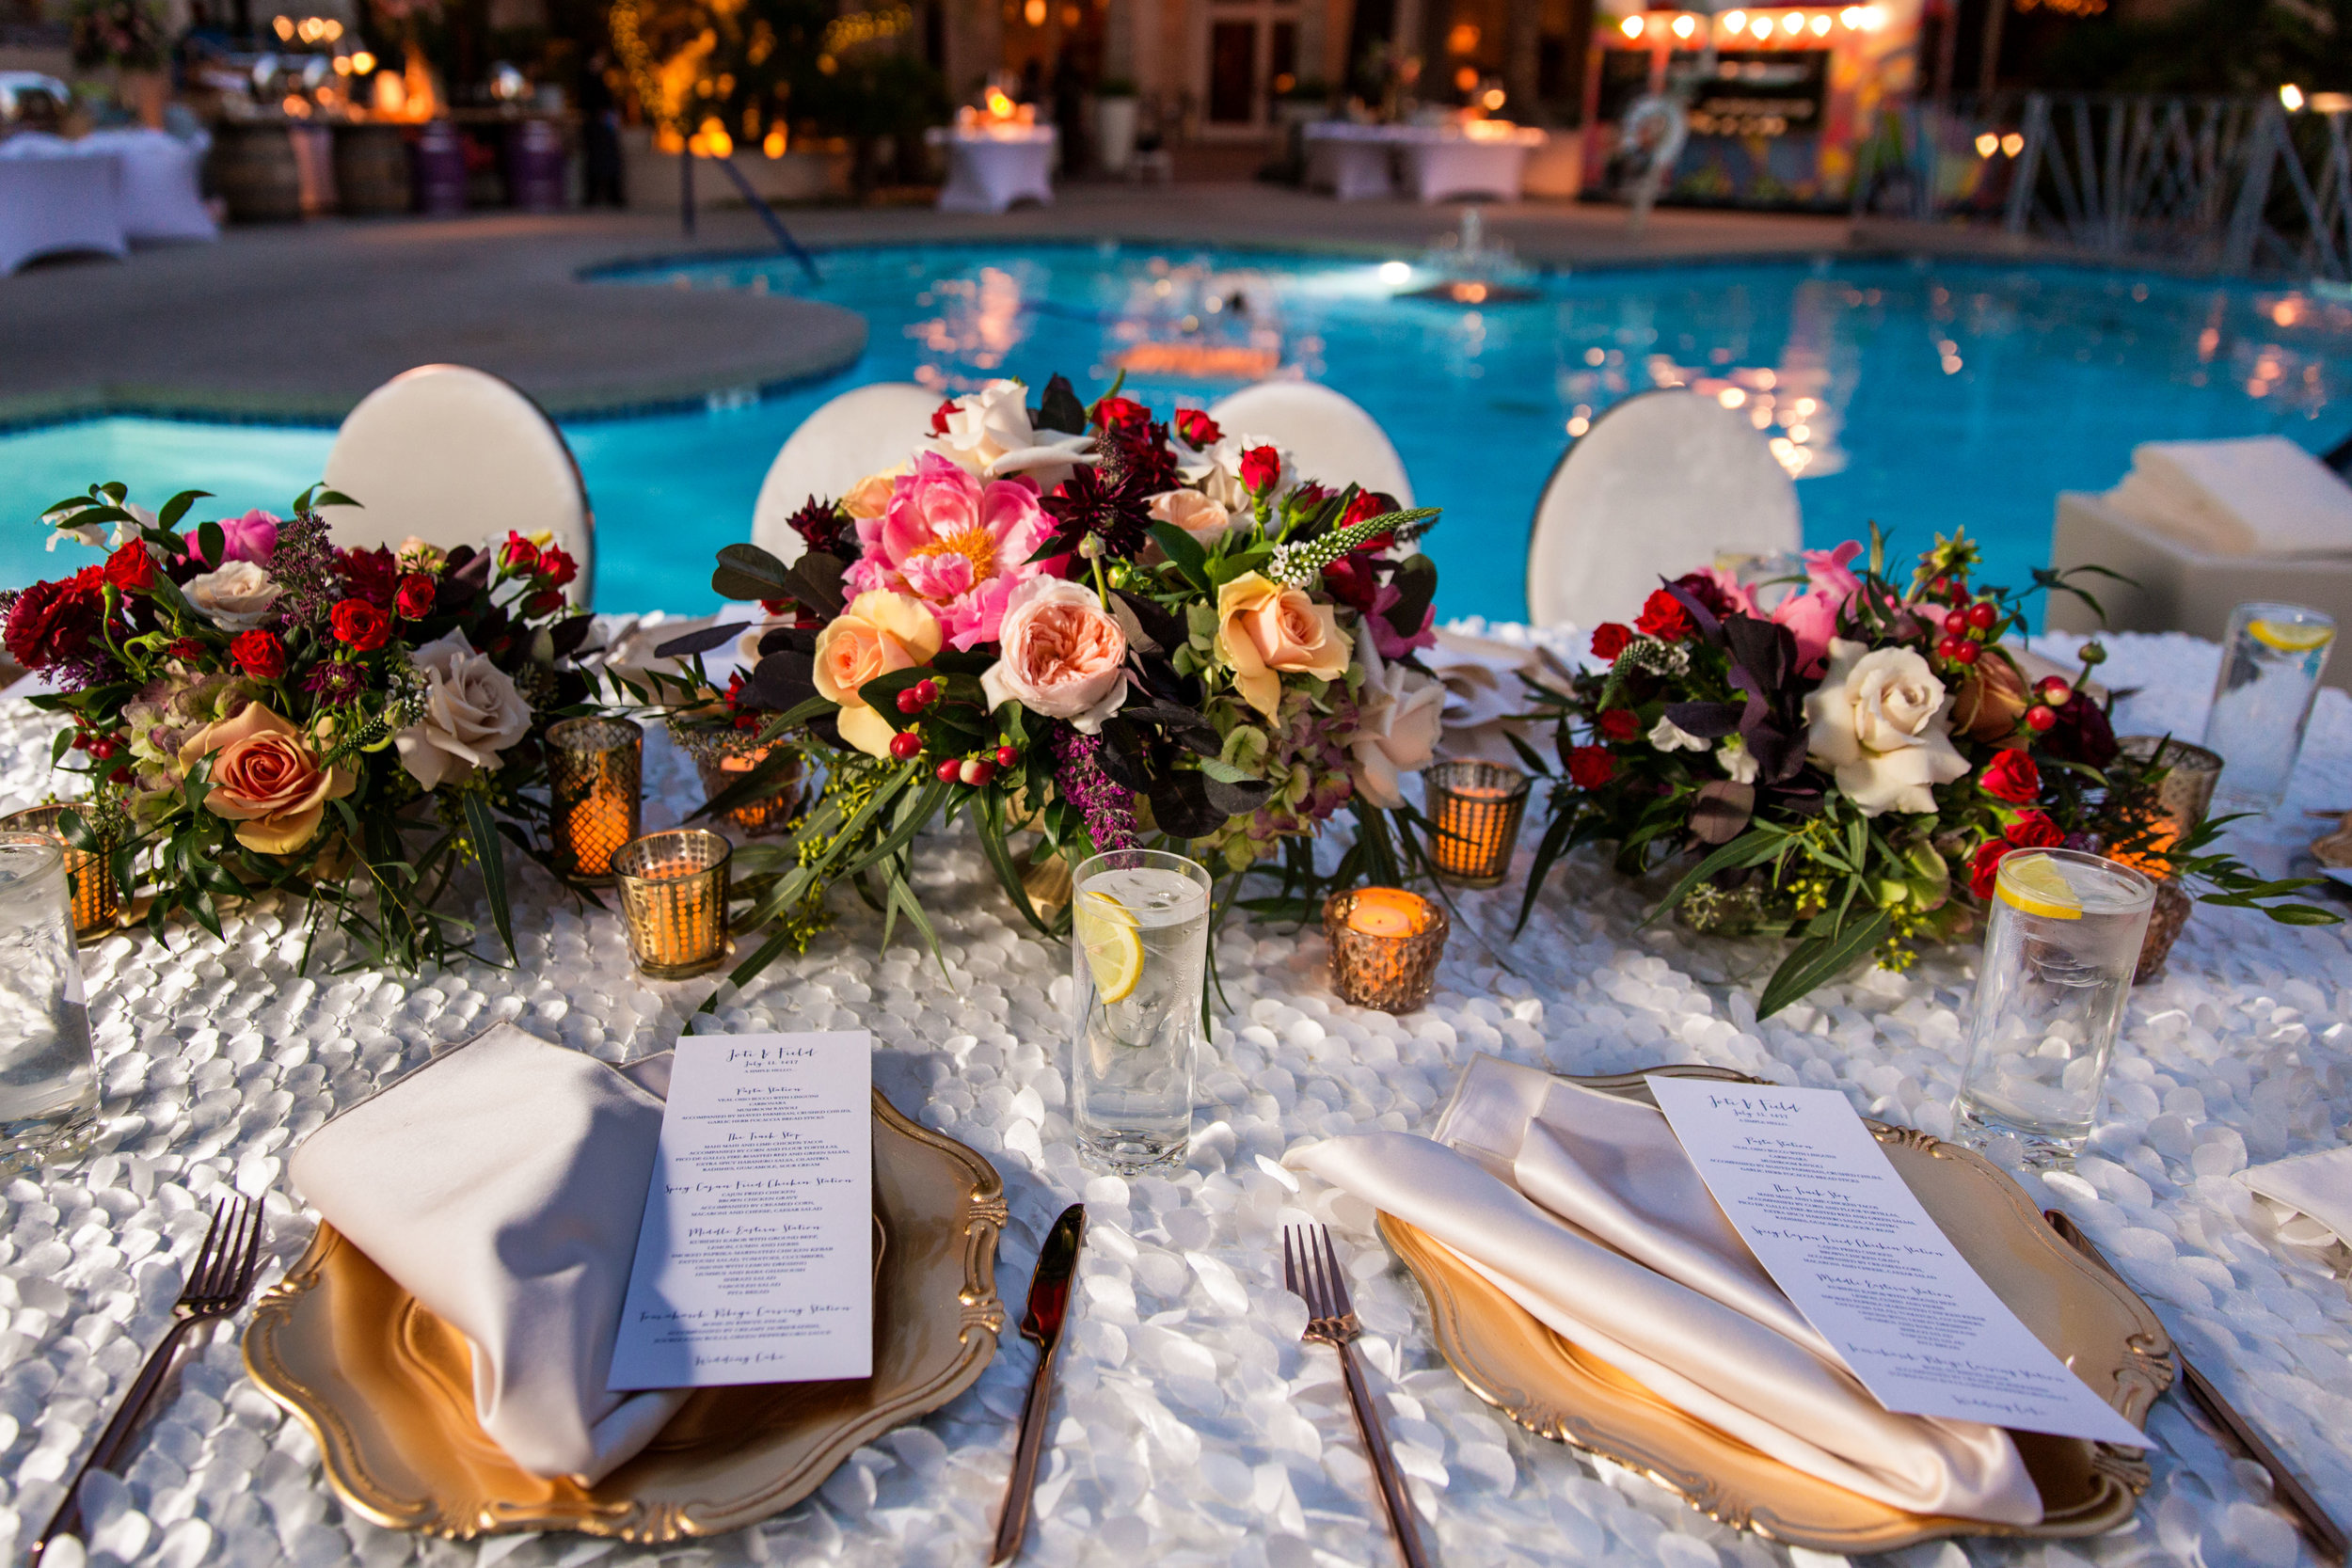 Jewel toned wedding centerpieces with gold accents.Wedding Planning by  Andrea Eppolito Events  · Photography by  Shandro Photo   · Wedding Venue  Four Seasons Las Vegas  · Floral and Decor by  Destination by Design  · Cake by  Four Seasons Las Vegas  · Chandeliers and Lighting by  LED Unplugged  · Dress by  Berta  and Menu by Alligator Soup